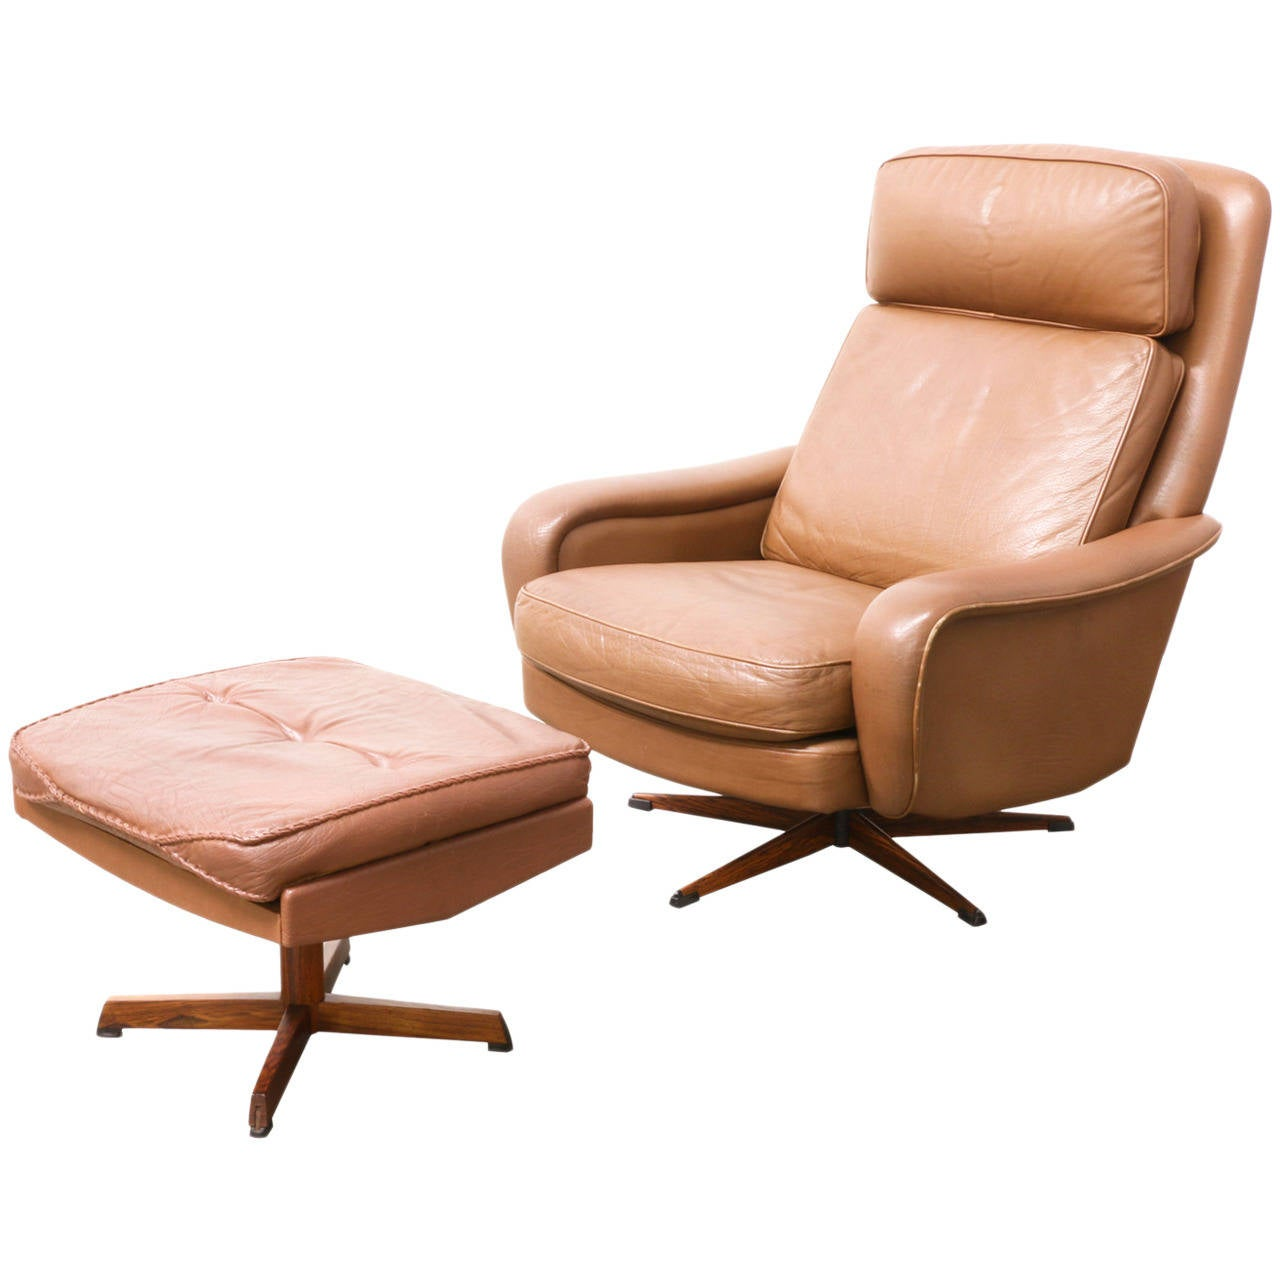 Danish modern leather lounge chair with ottoman at 1stdibs for Modern leather club chair